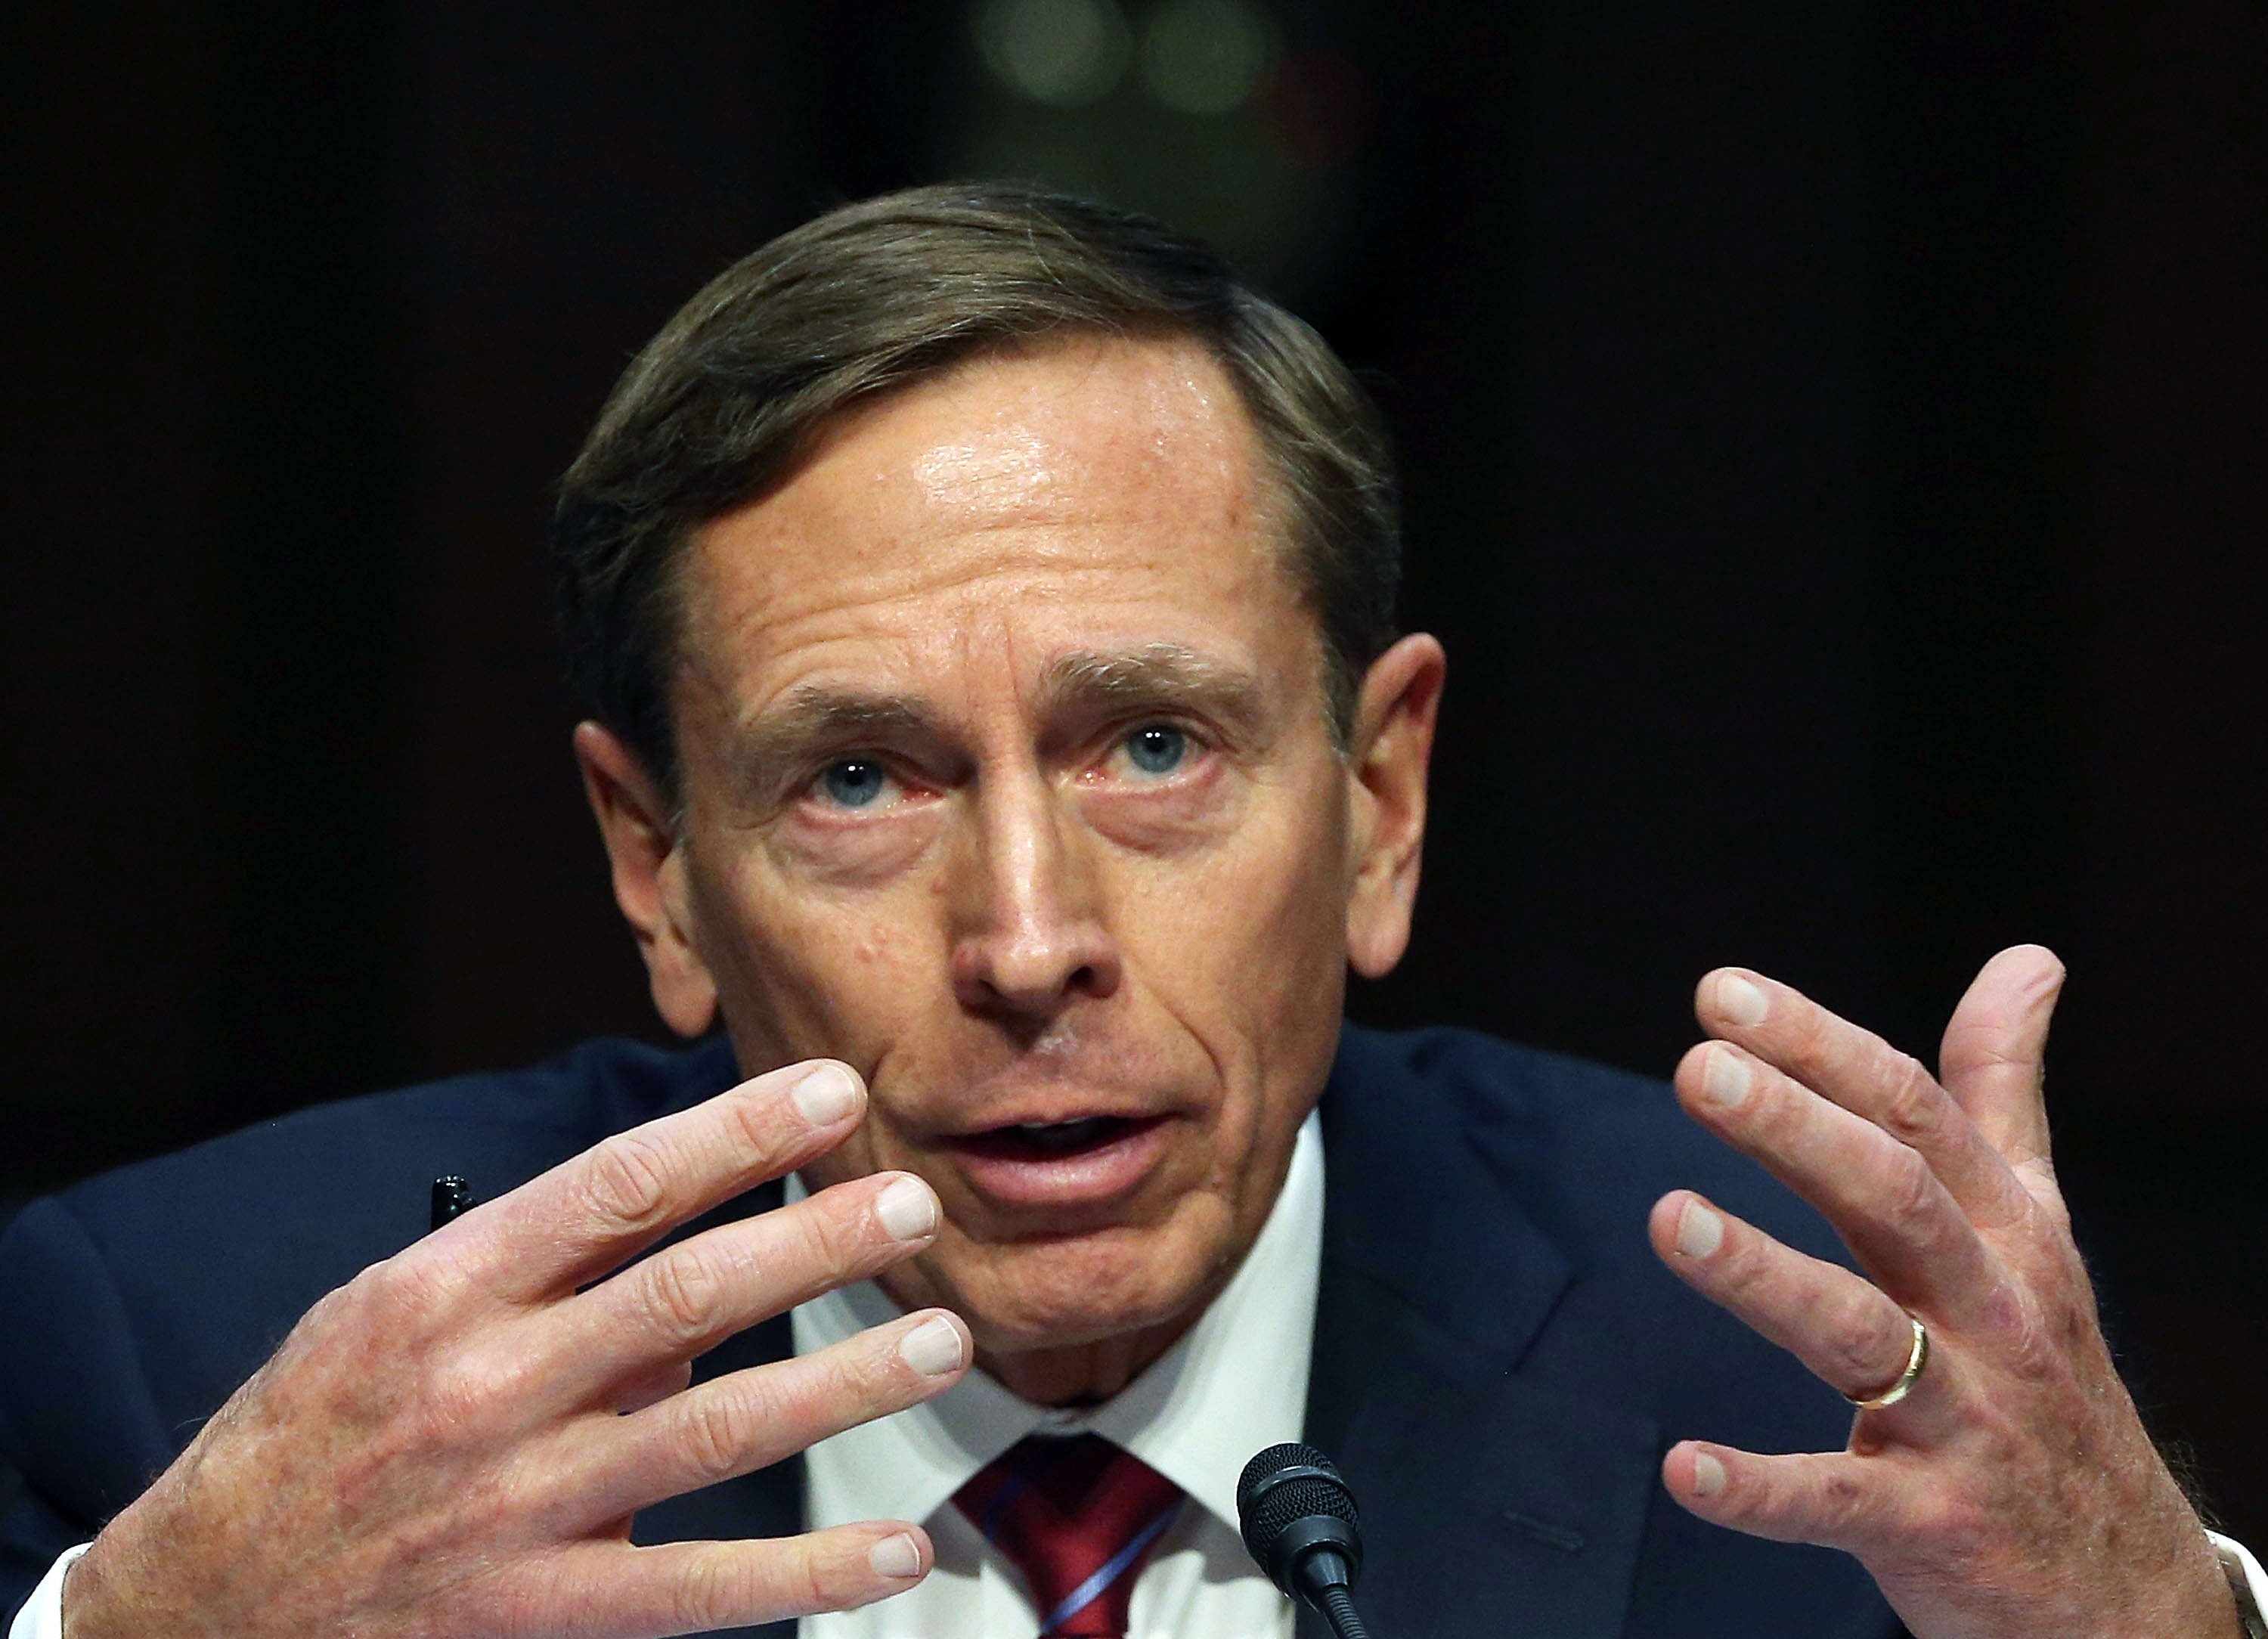 Heres What You Need To Know About Shadowy Global Elite Bilderberg Meeting petraeus